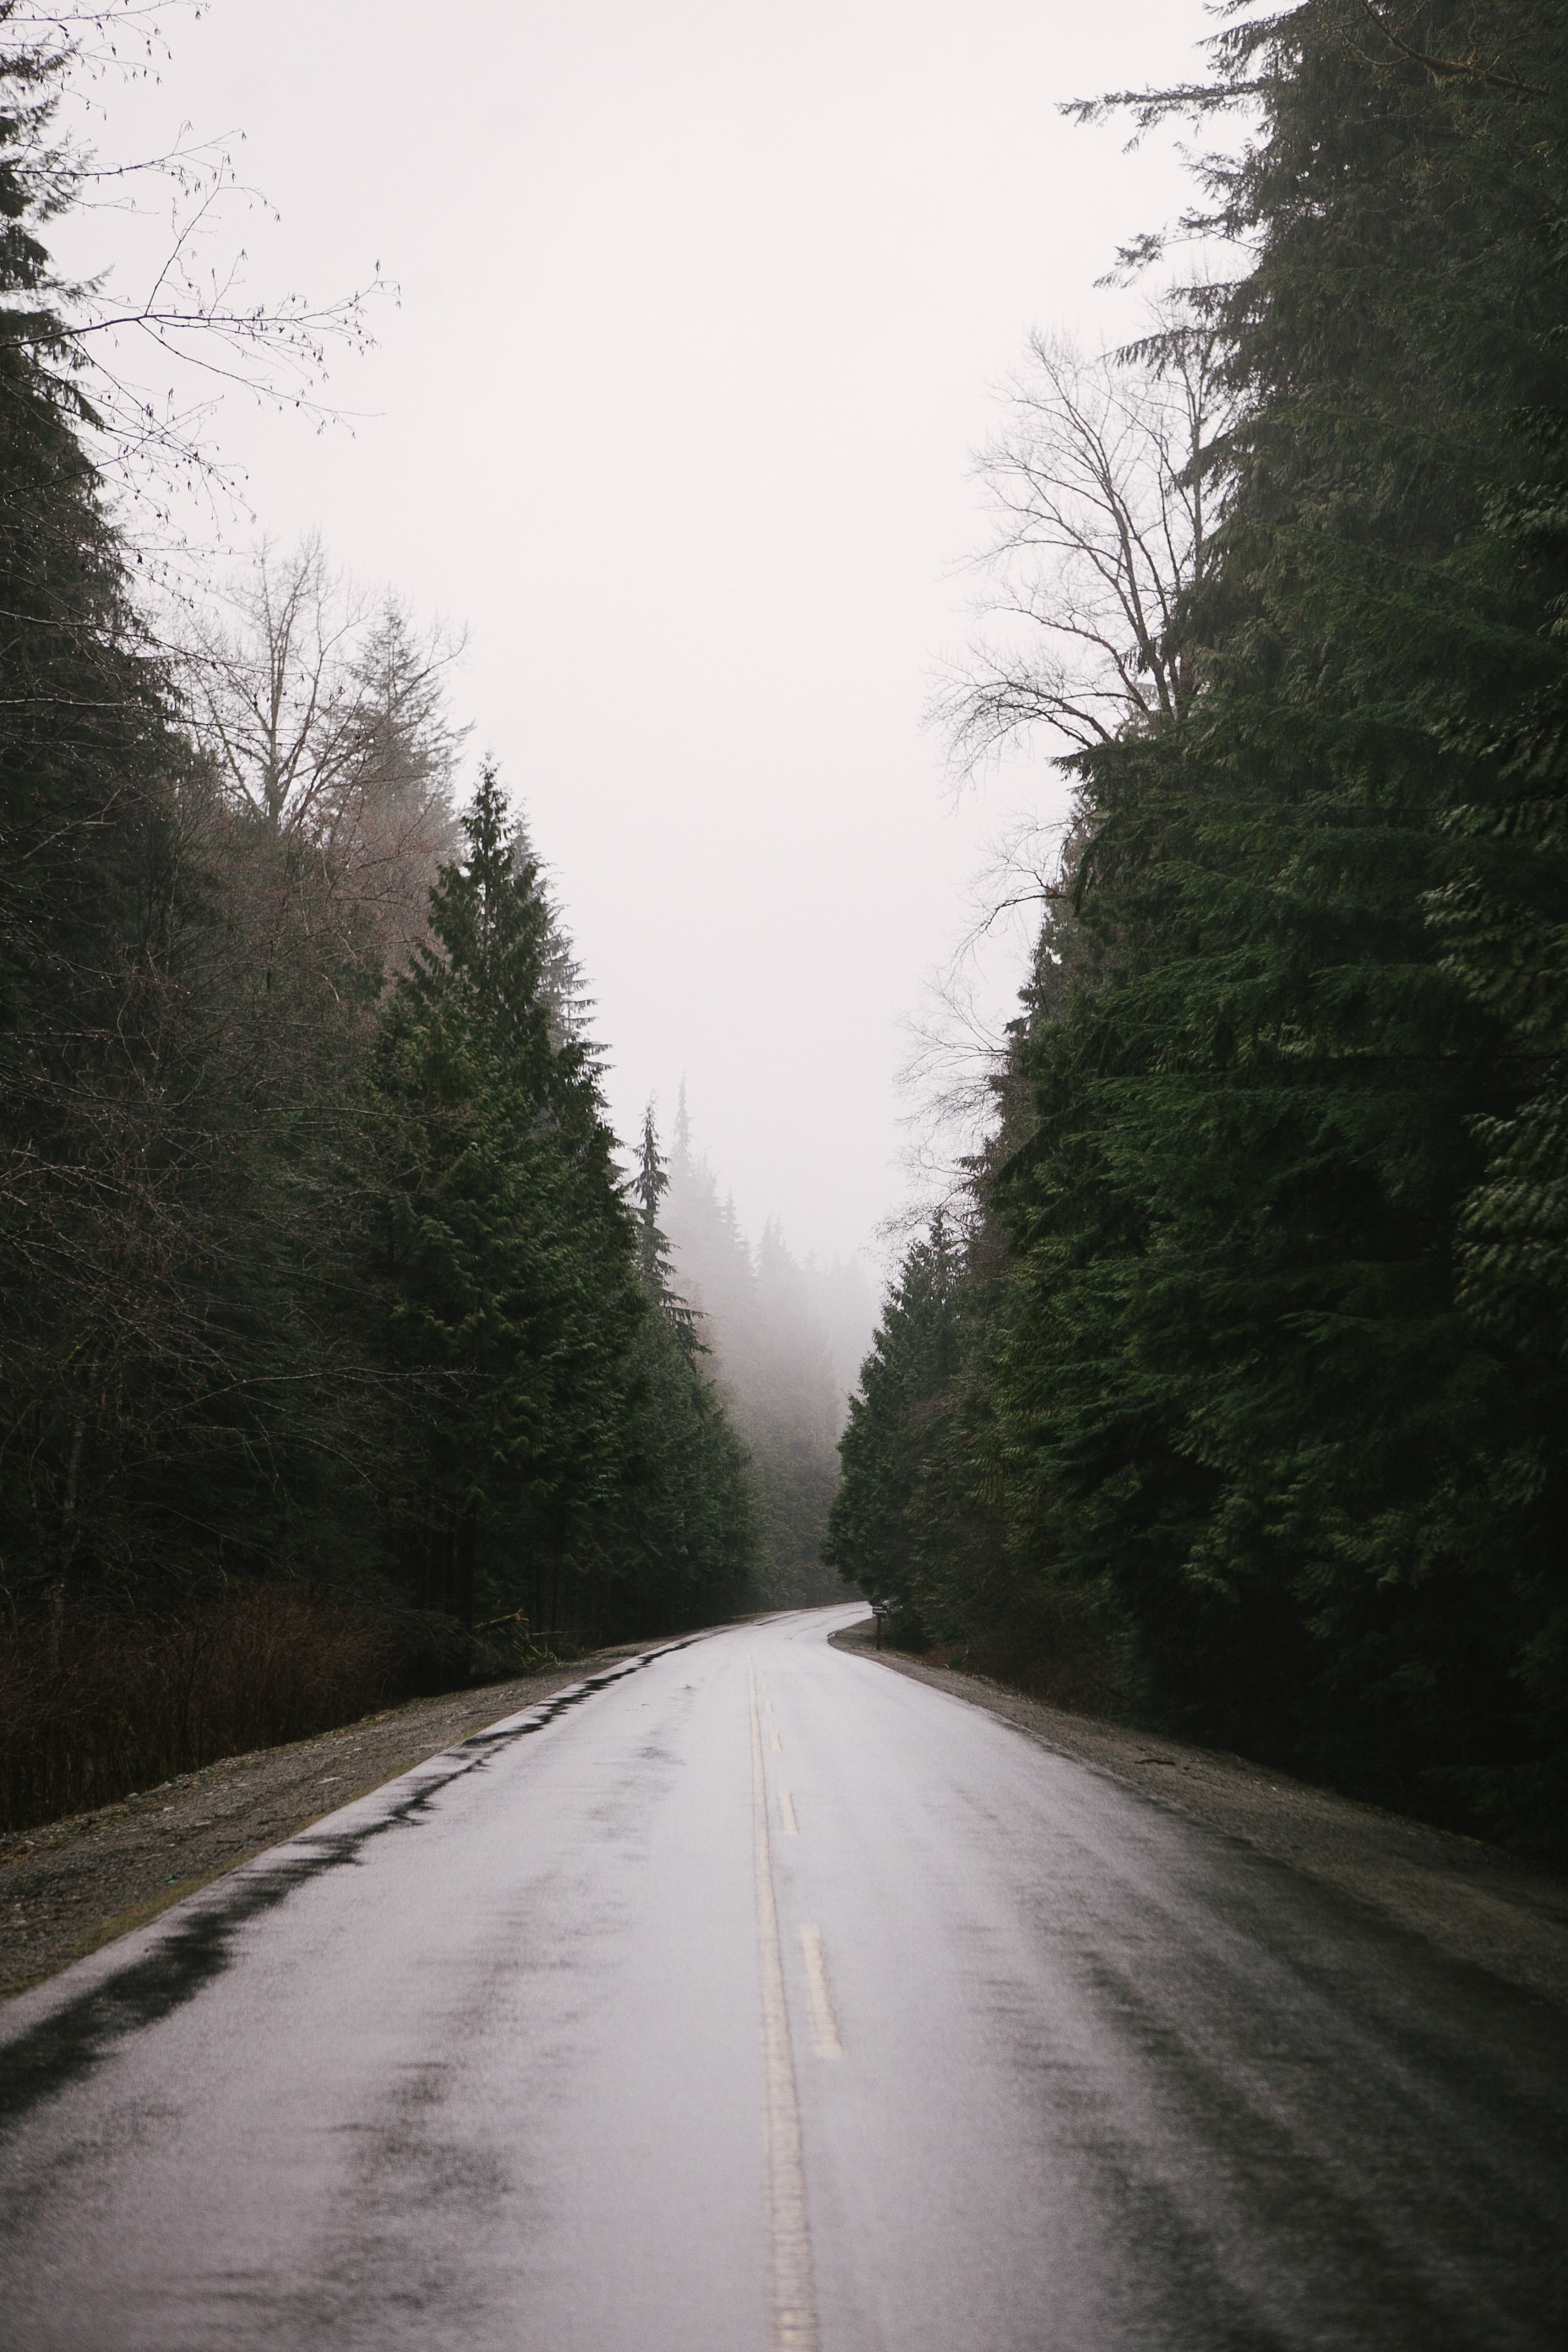 A wet tree-lined road on a foggy day